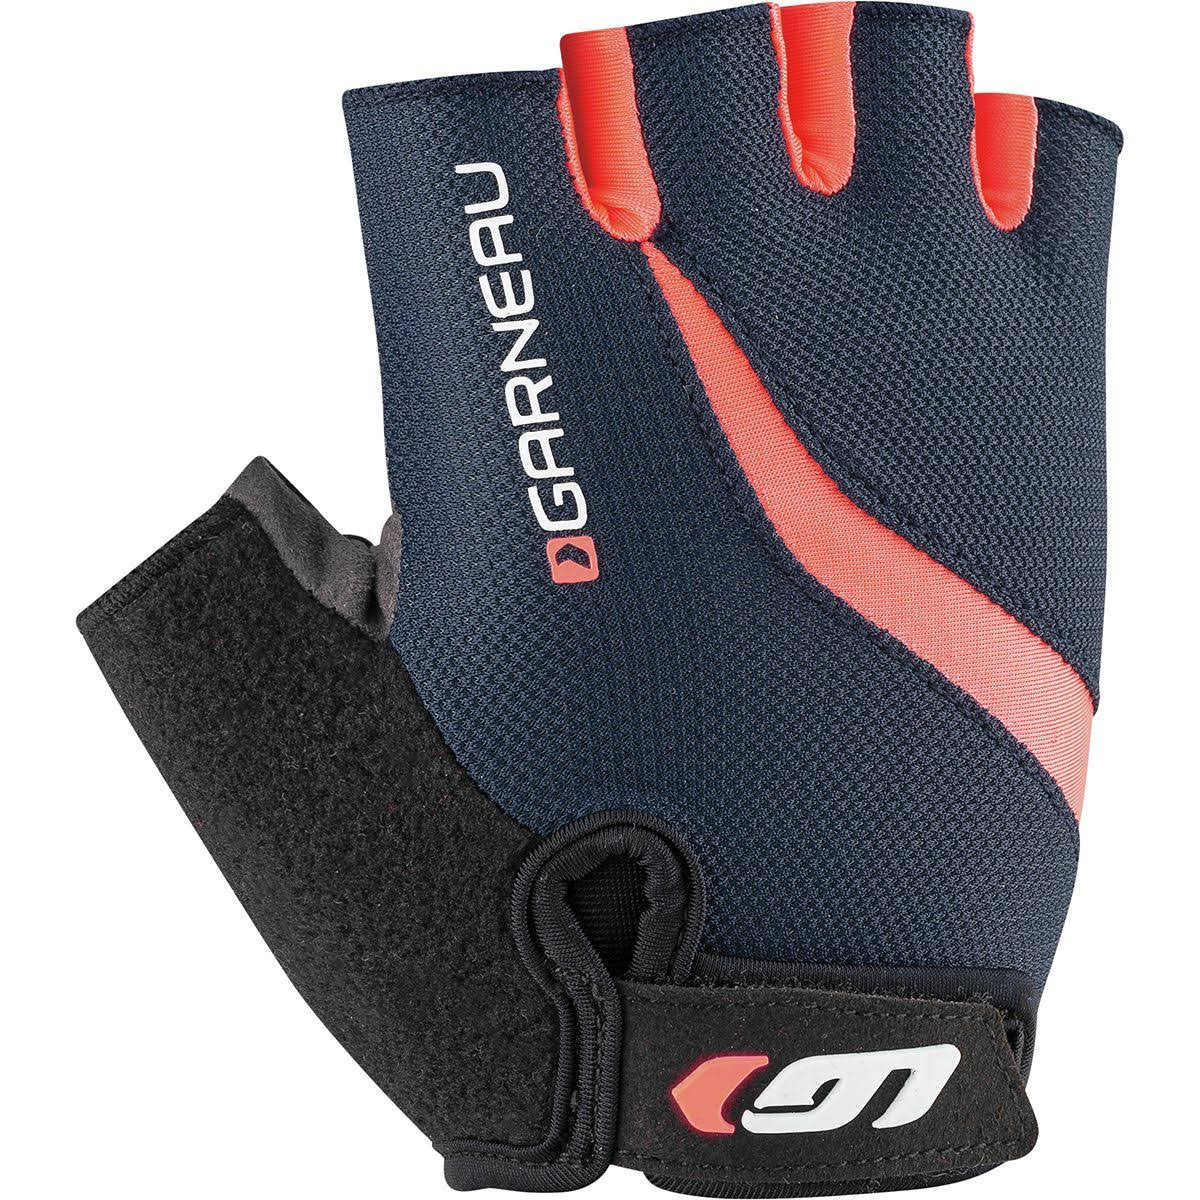 Louis Garneau Women's Biogel RX-V Cycling Gloves, Size: Medium, Mania